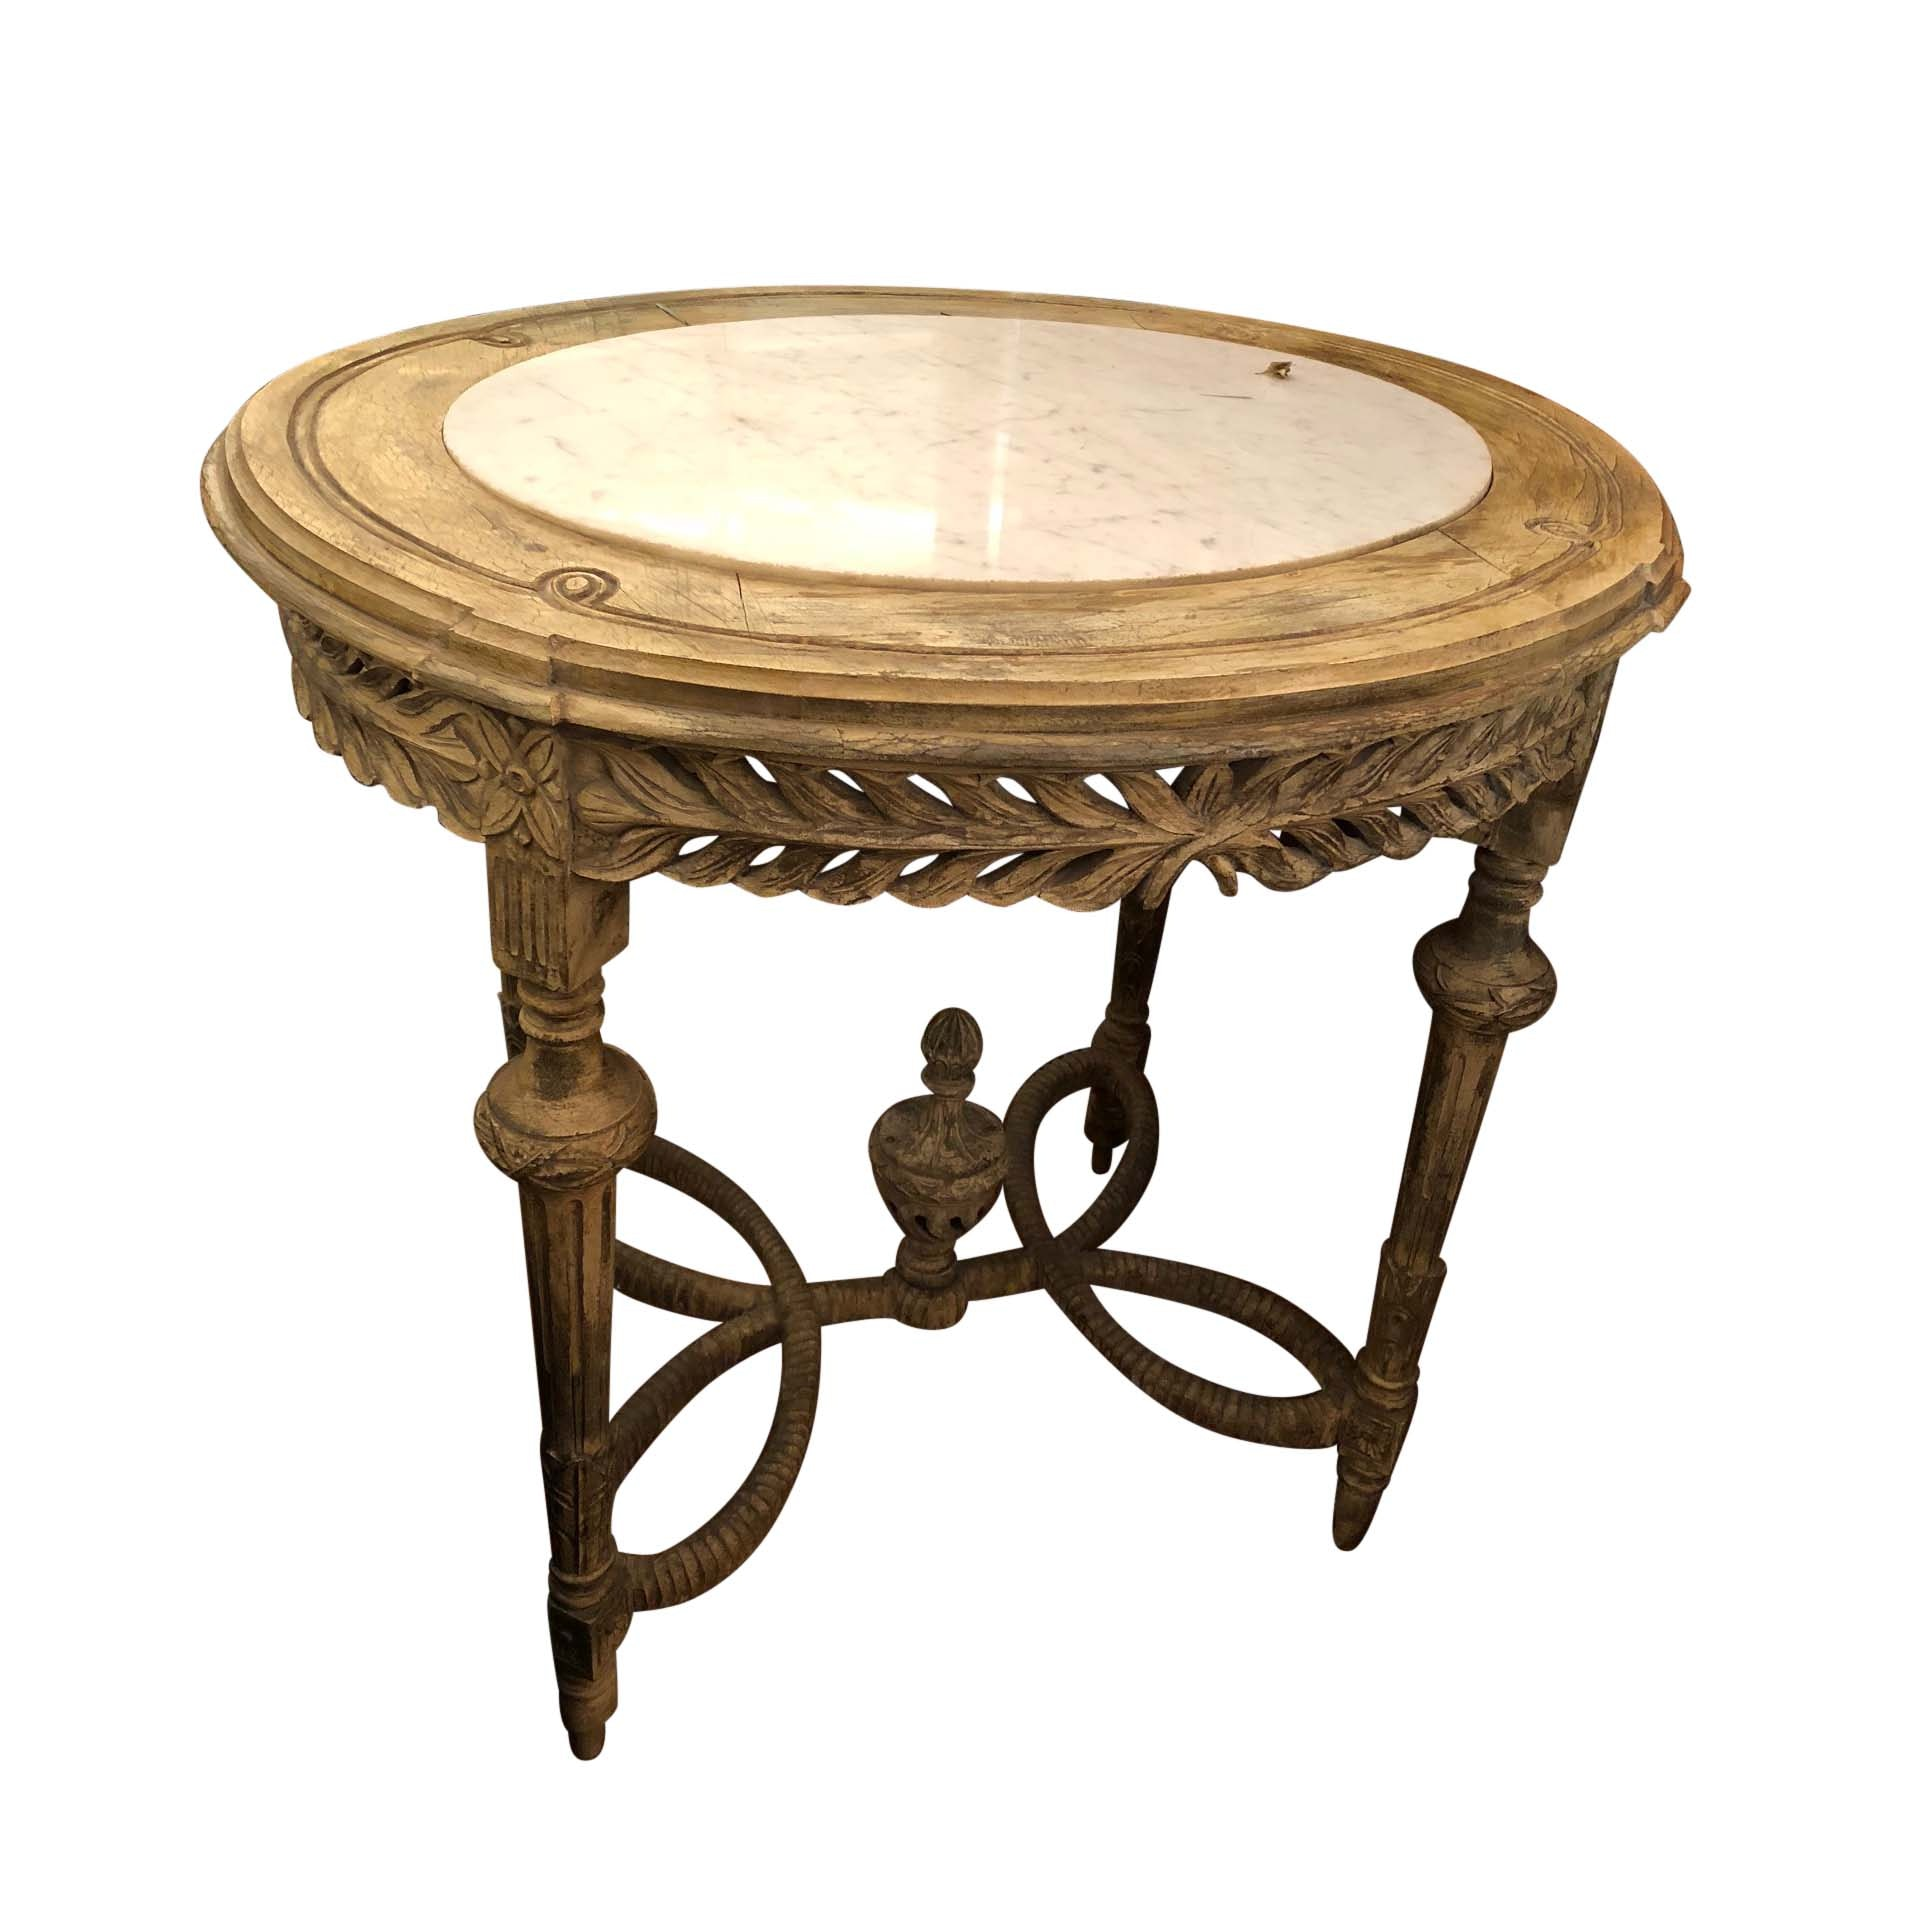 Vintage Louis XVI Style Marble Top Accent Table